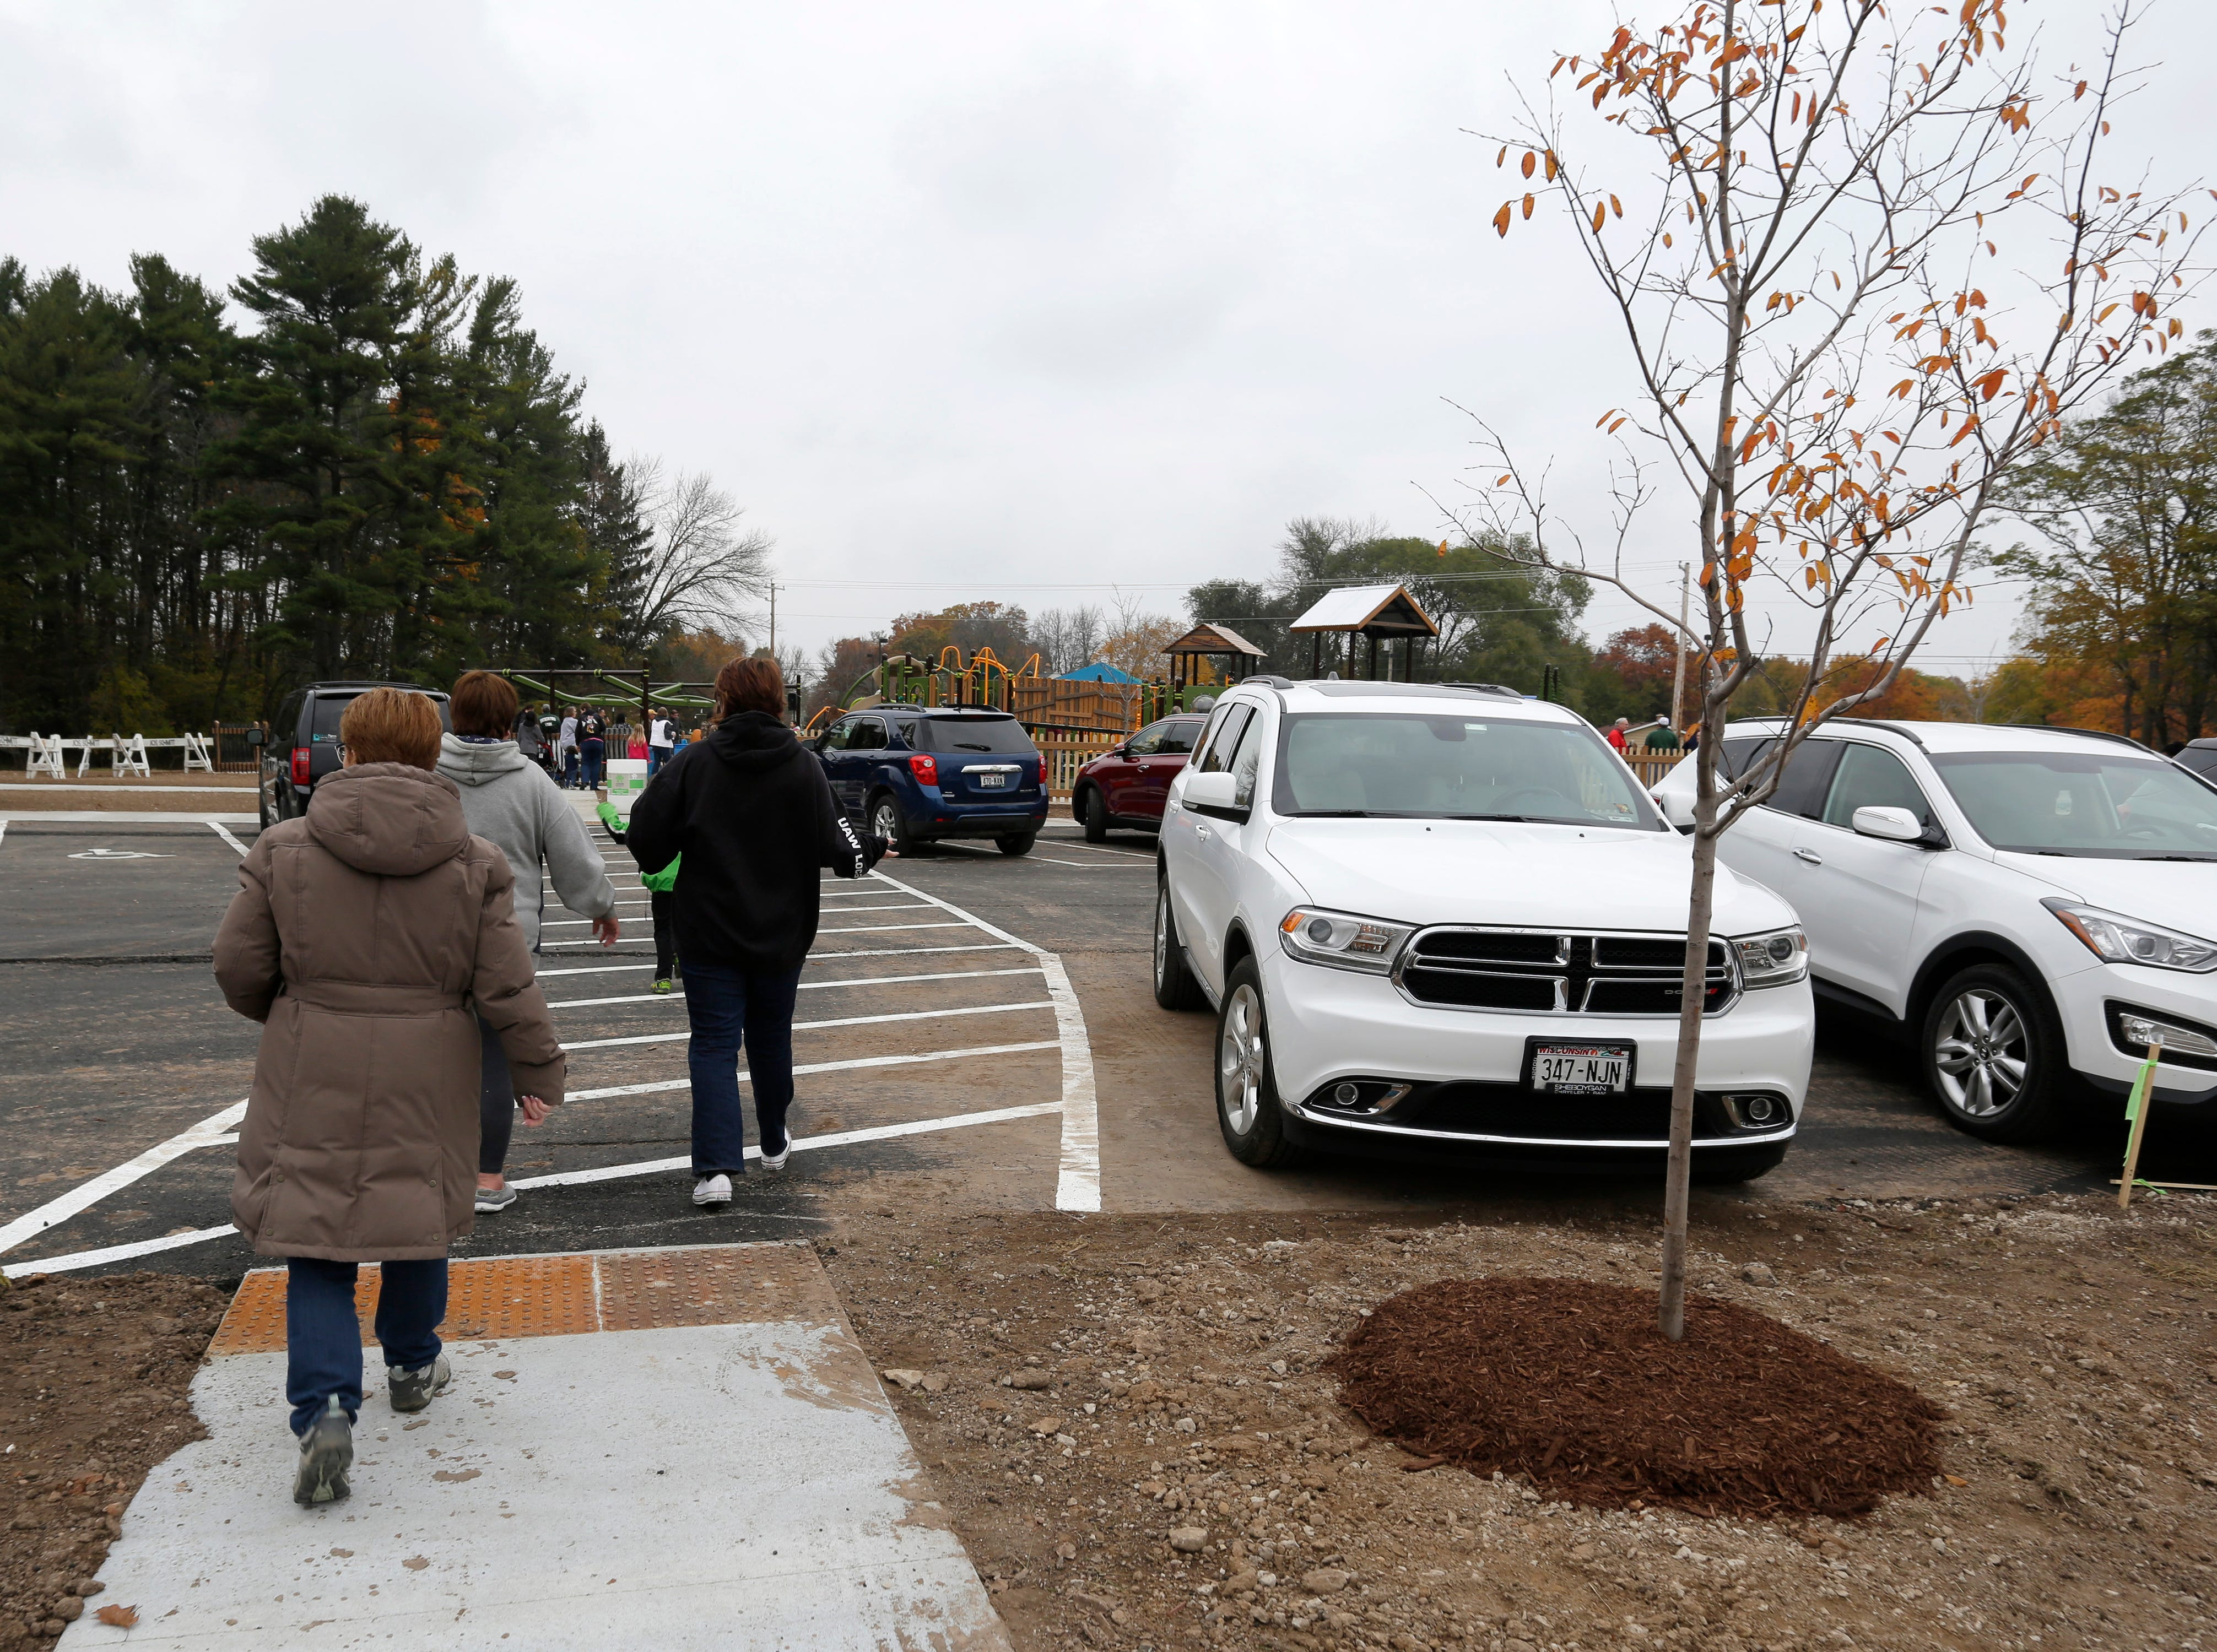 People arriving at the ribbon cutting for hte Shaw Family Playground saw freshly planted trees near the entrance, Saturday, September 27, 2018, in Sheboygan, Wis. The playground held a ribbon cutting event to showcase the adaptive playground that is accessible for children of all physical abilities.